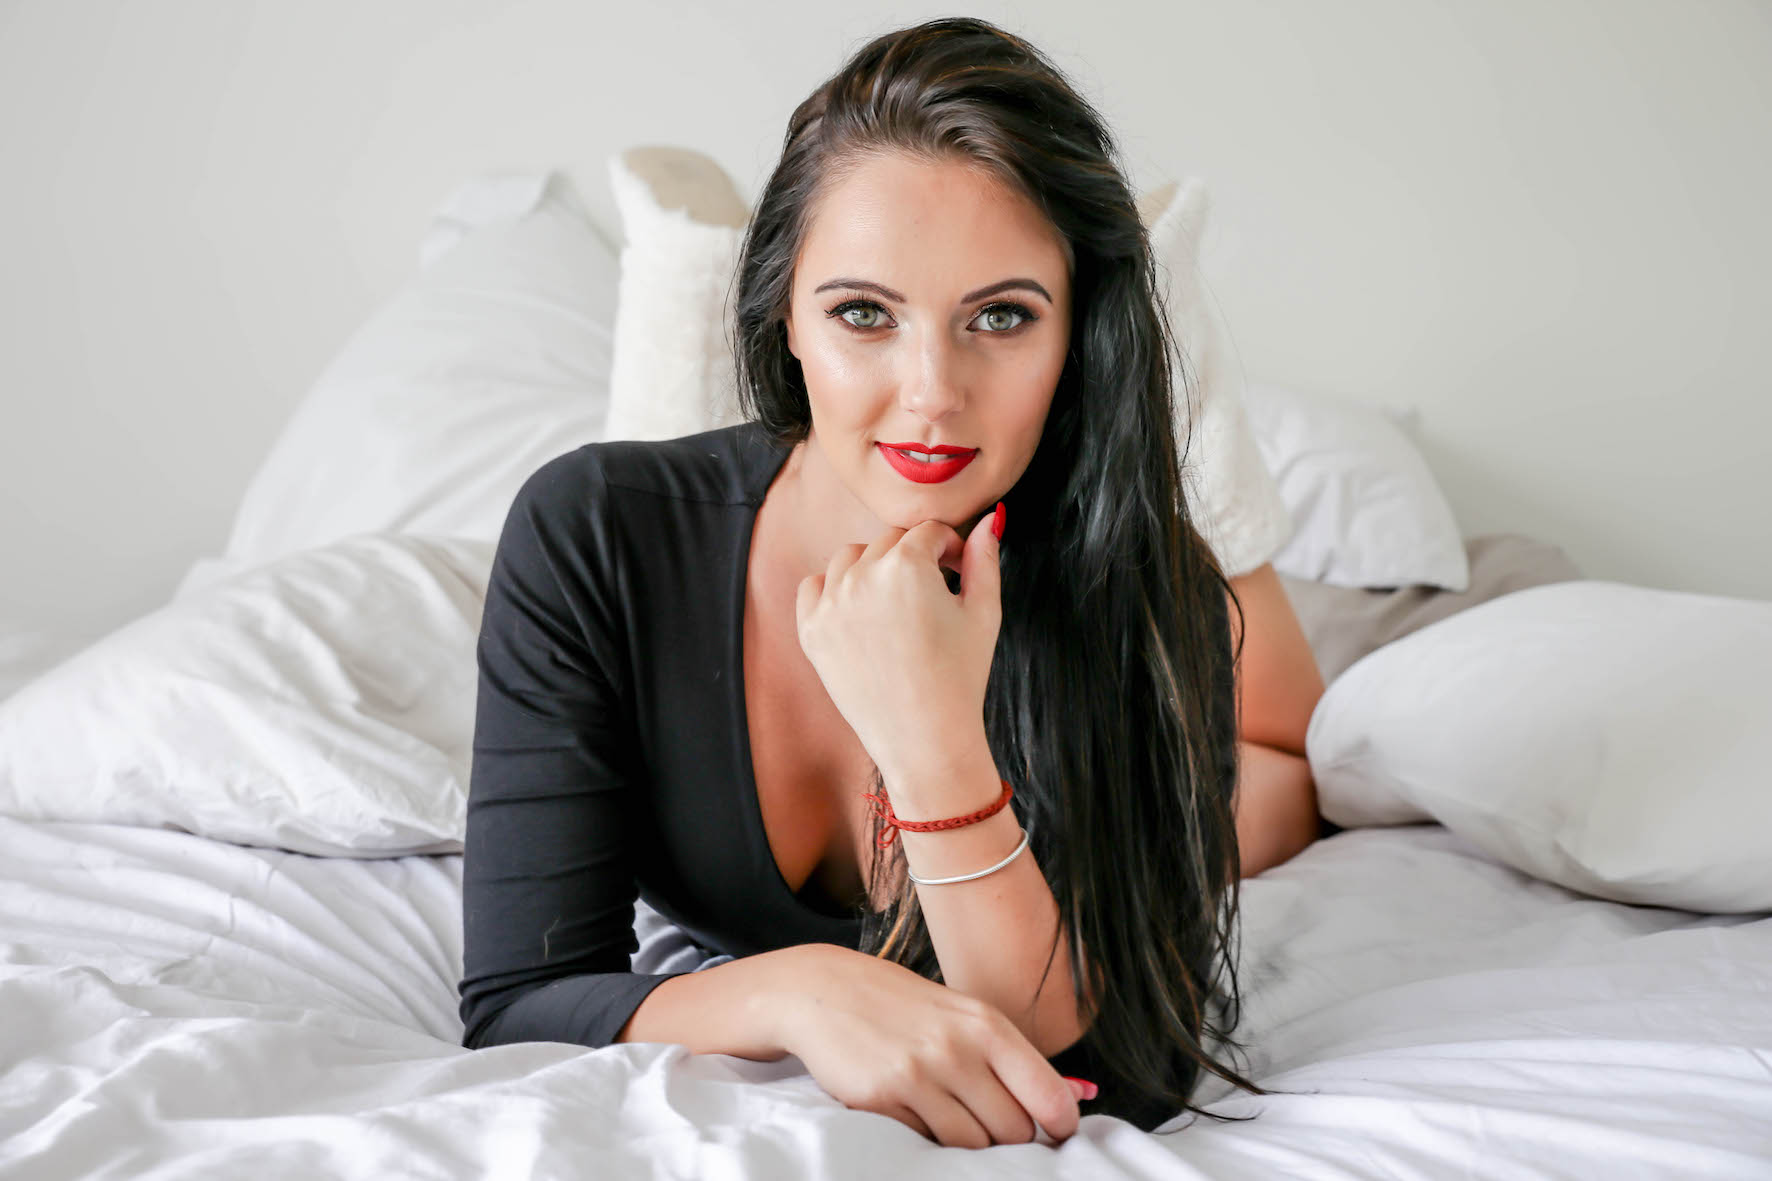 Our South African Babes feature with Vianda van Deventer